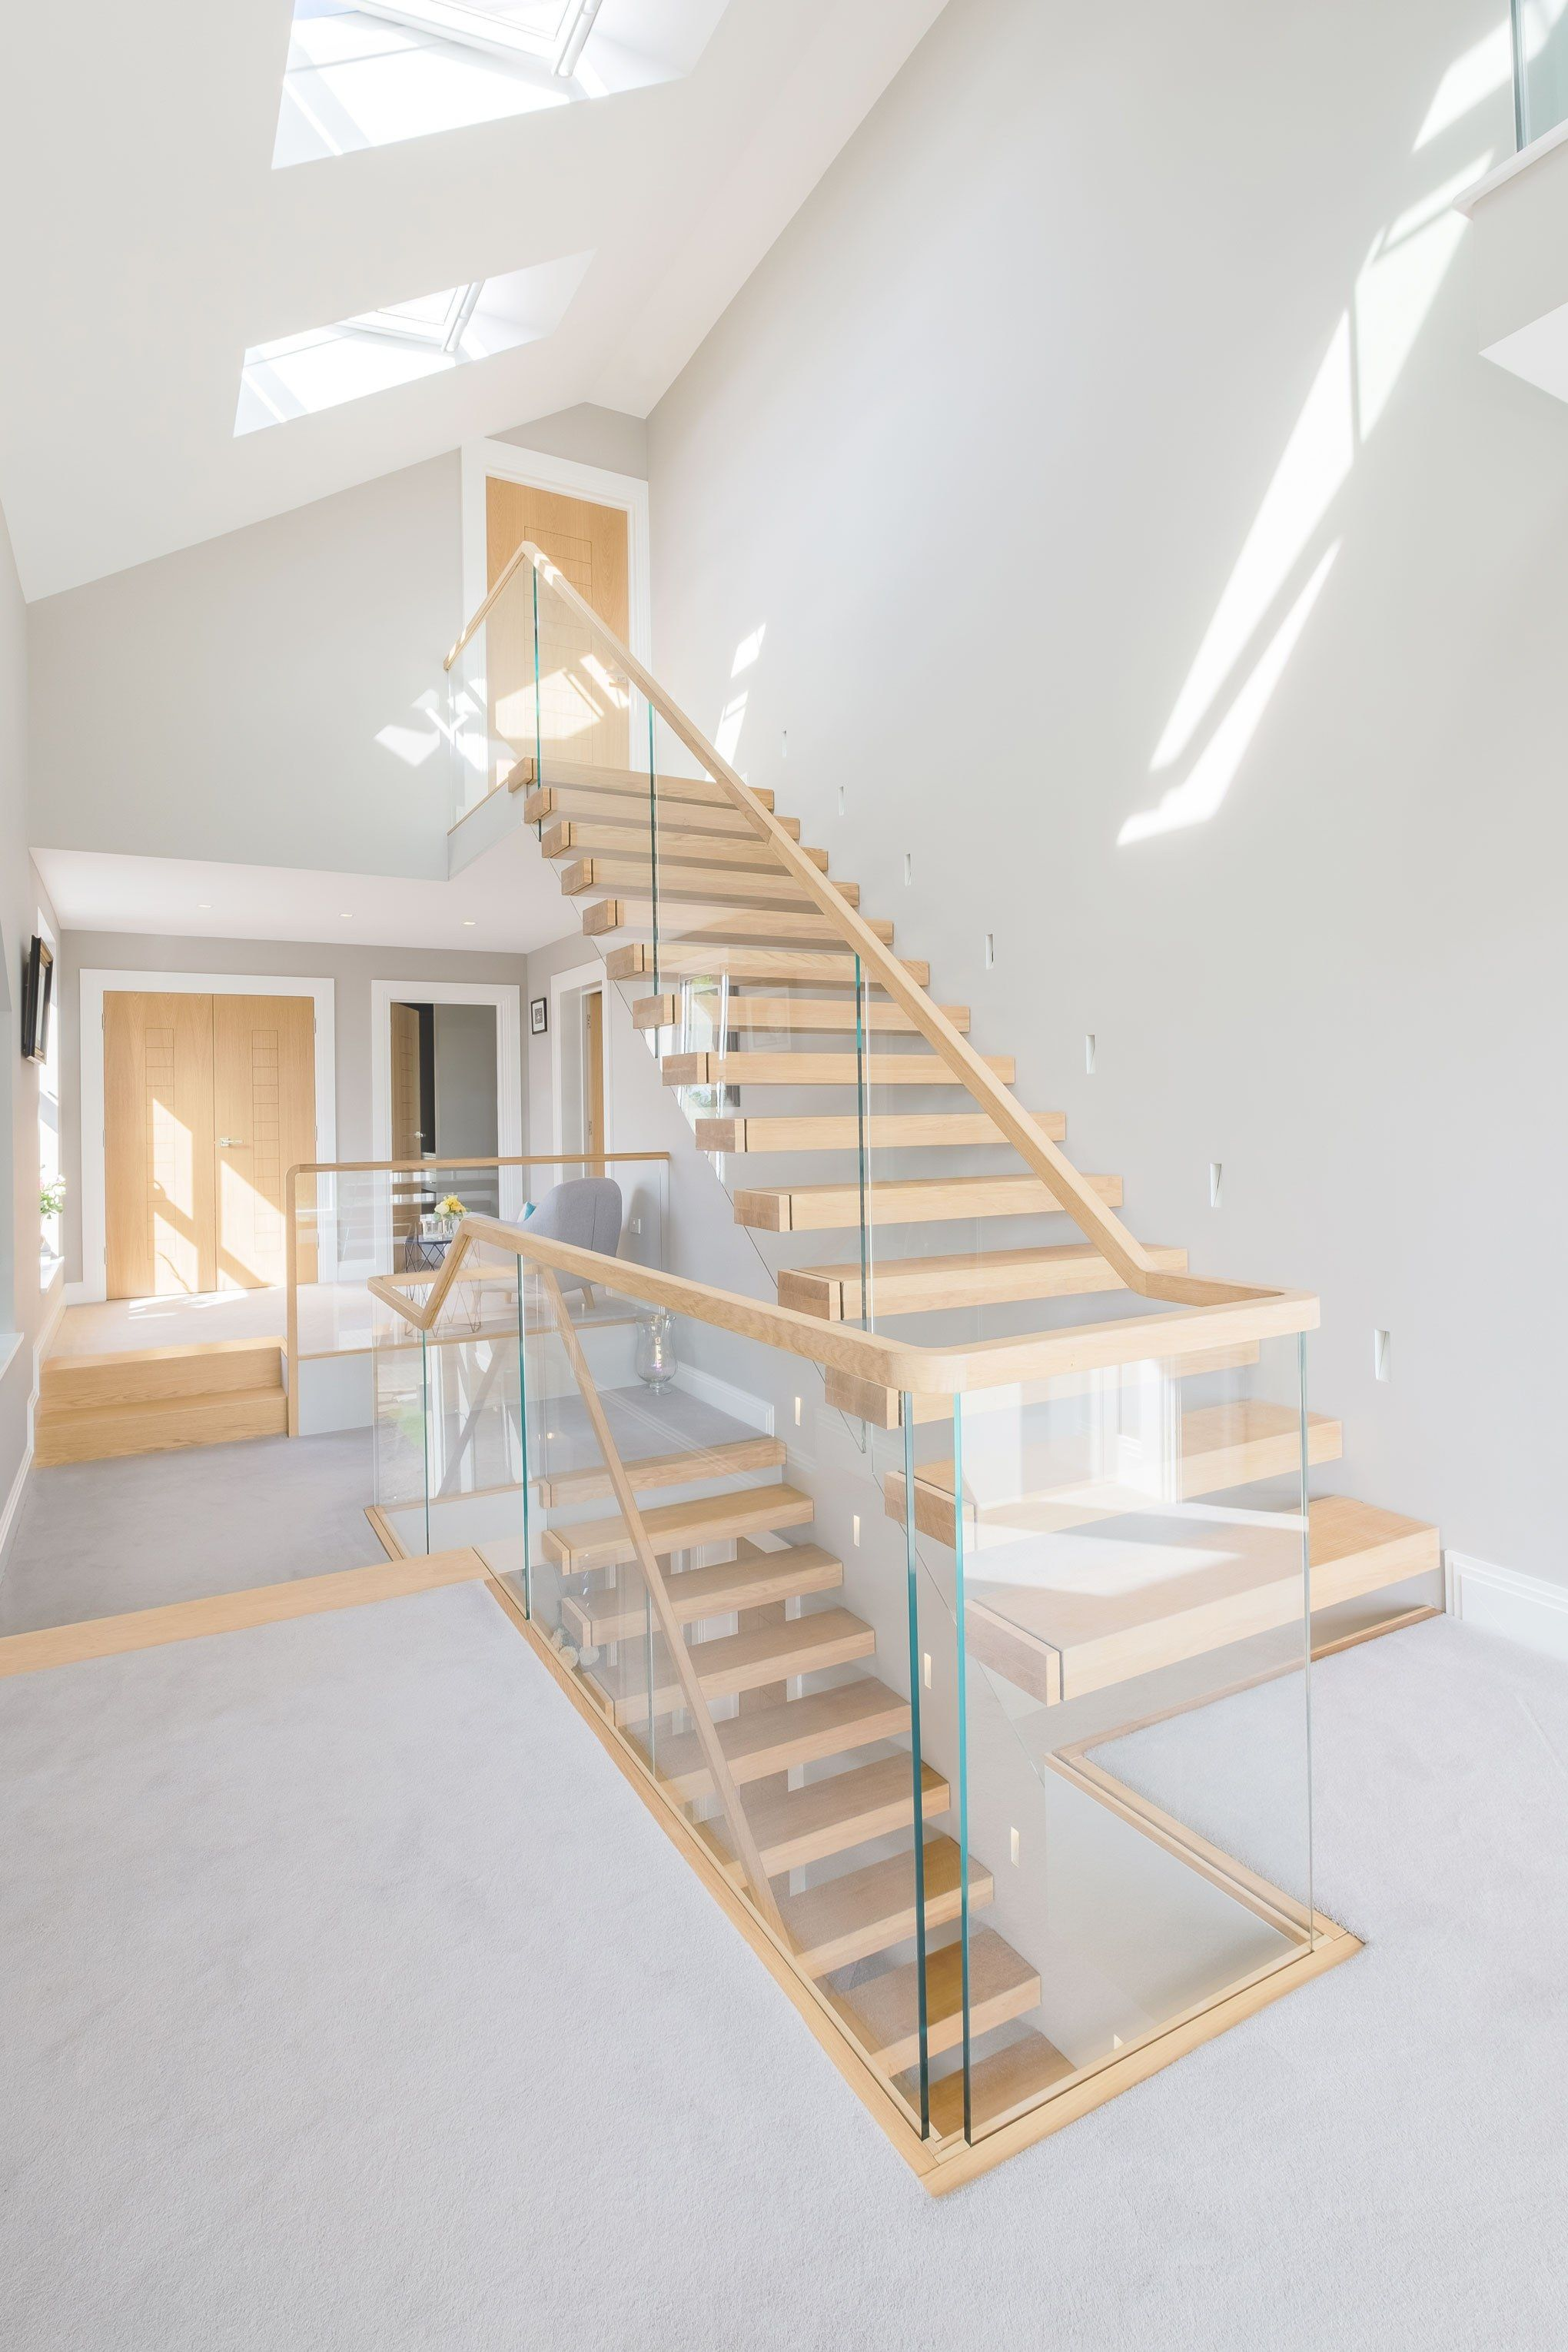 View of triple height floating cantilevered oak stair with glass balustrade. Grey walls and carpet with wood doors. Two large skylights.